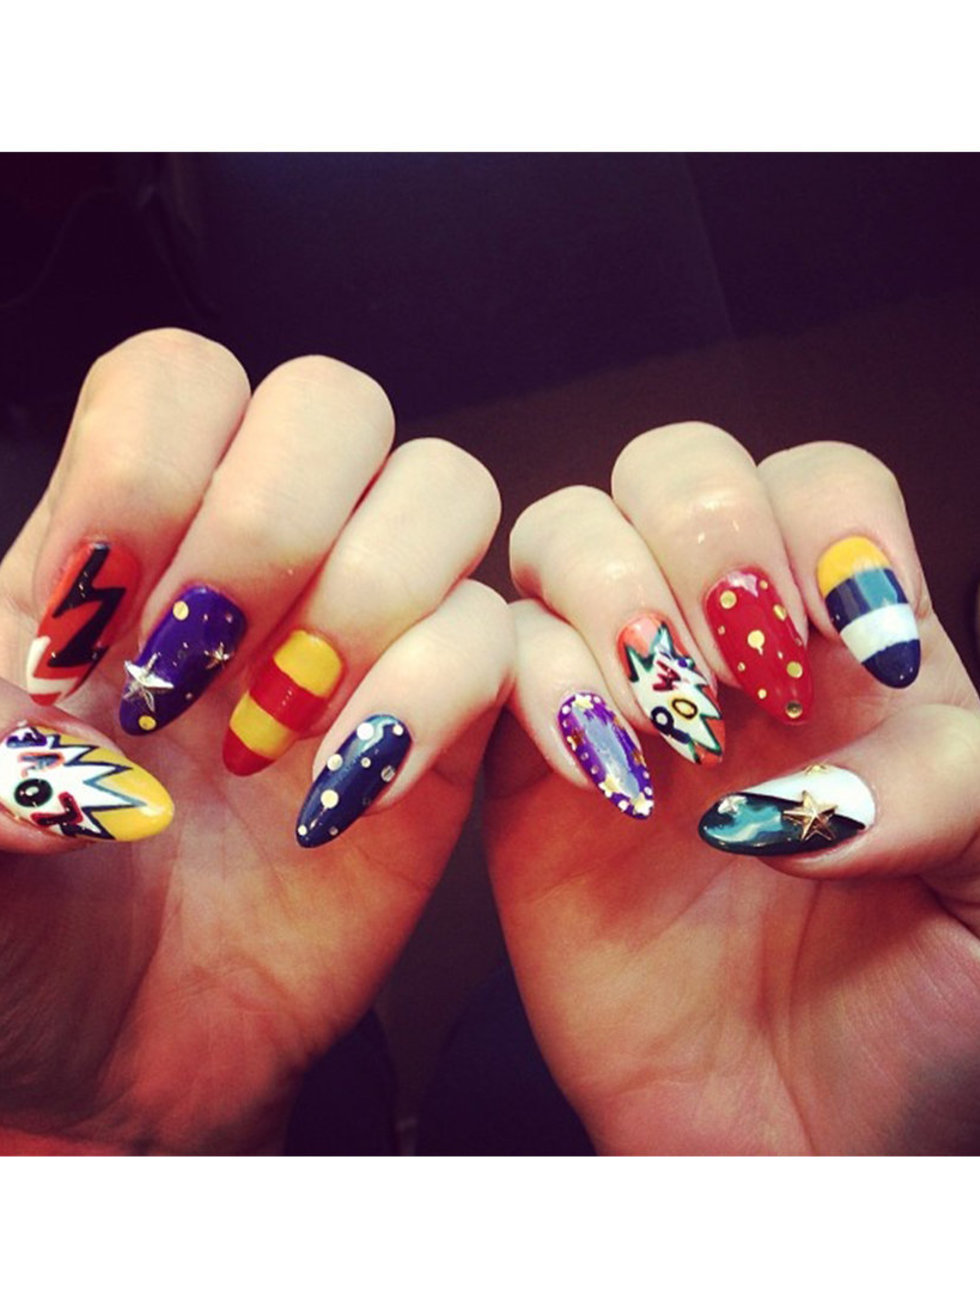 Nail art designs the best celebrity nail art for all your nail art designs the best celebrity nail art for all your manicure inspiration prinsesfo Gallery